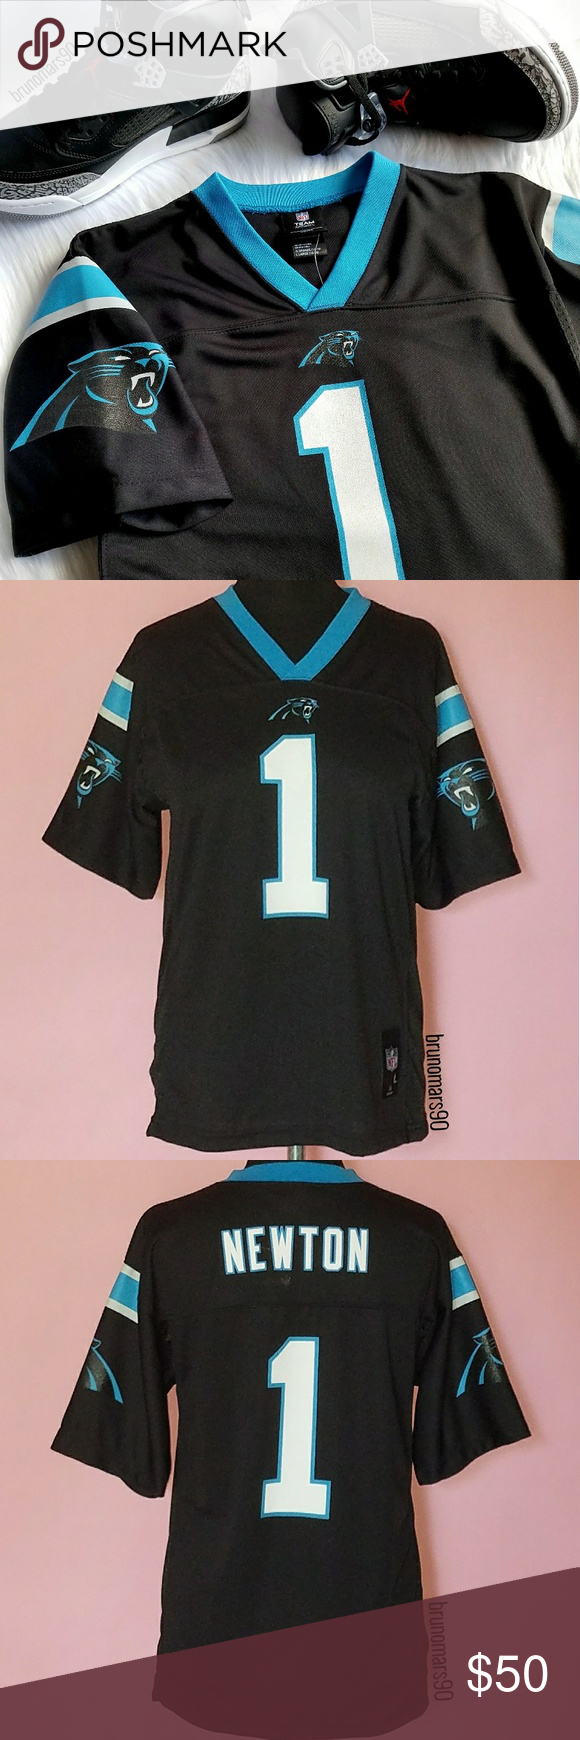 Cam Newton NFL Jersey NWT Dab into Superman s gear. Show them your  1  everytime d6a35384f